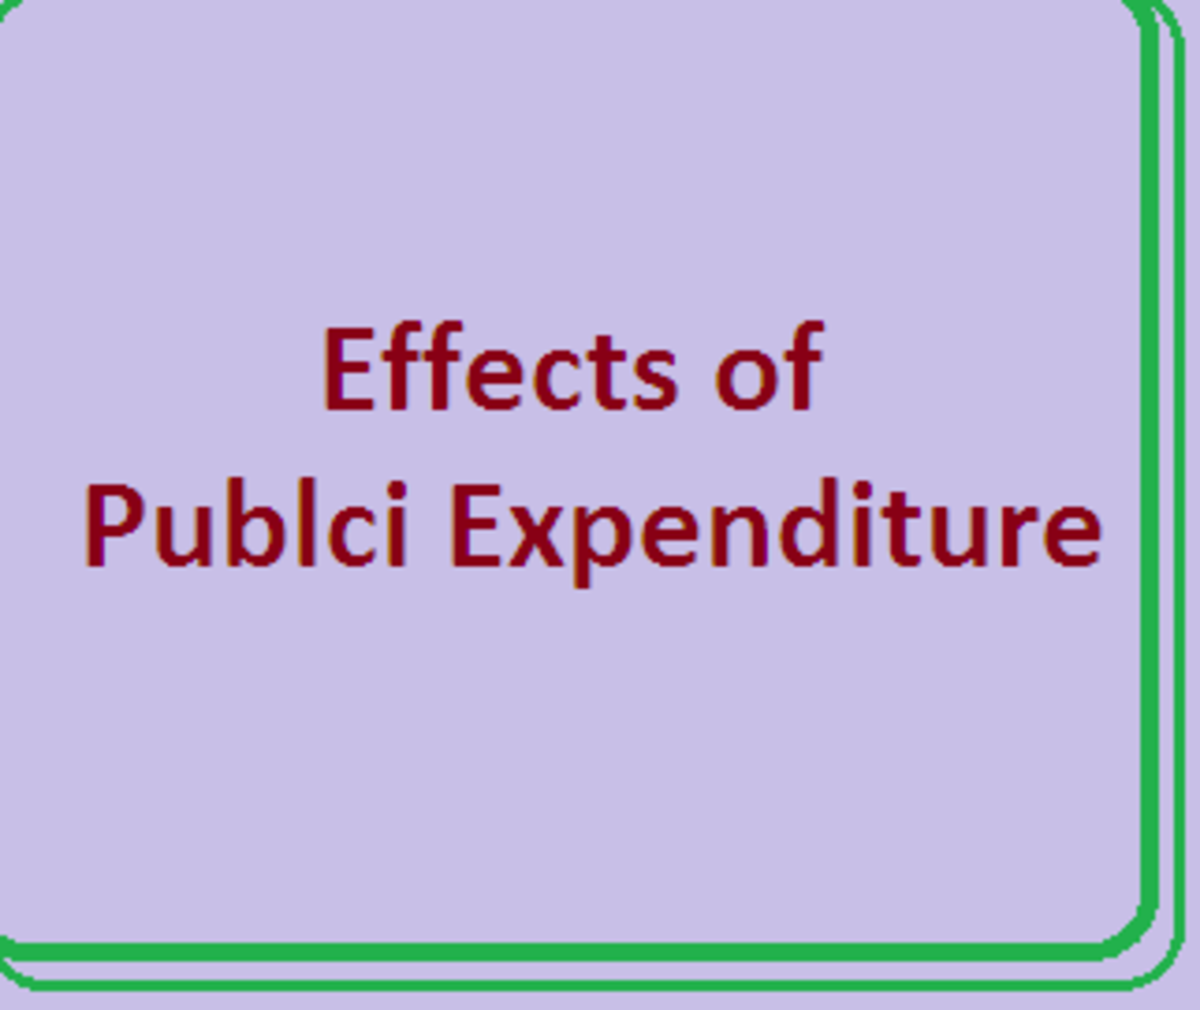 Effects of Public Expenditure in an Economy